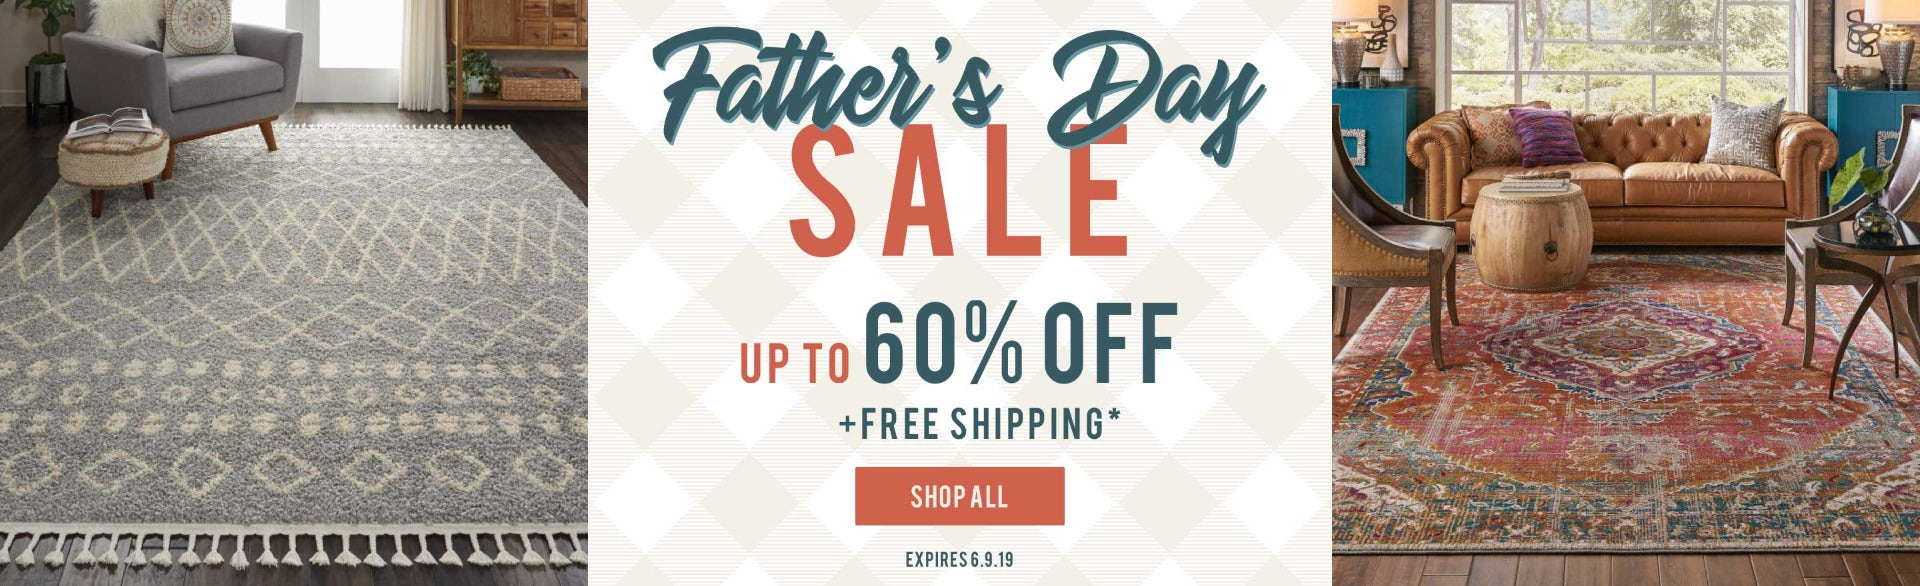 Father's Day Rug Sale